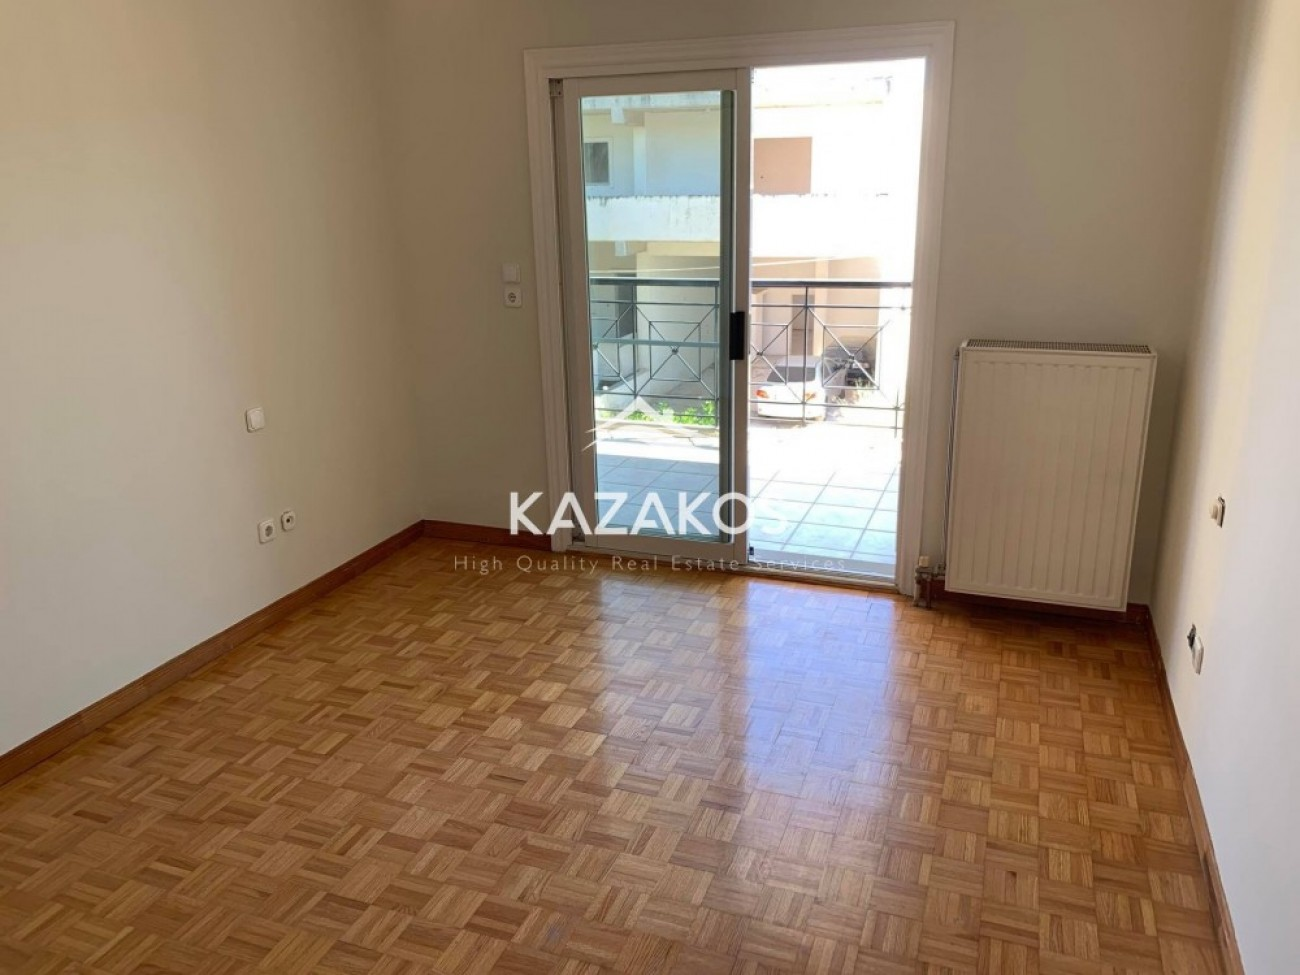 Maisonette for Sale in Anthousa, North & East Region of Athens, Greece